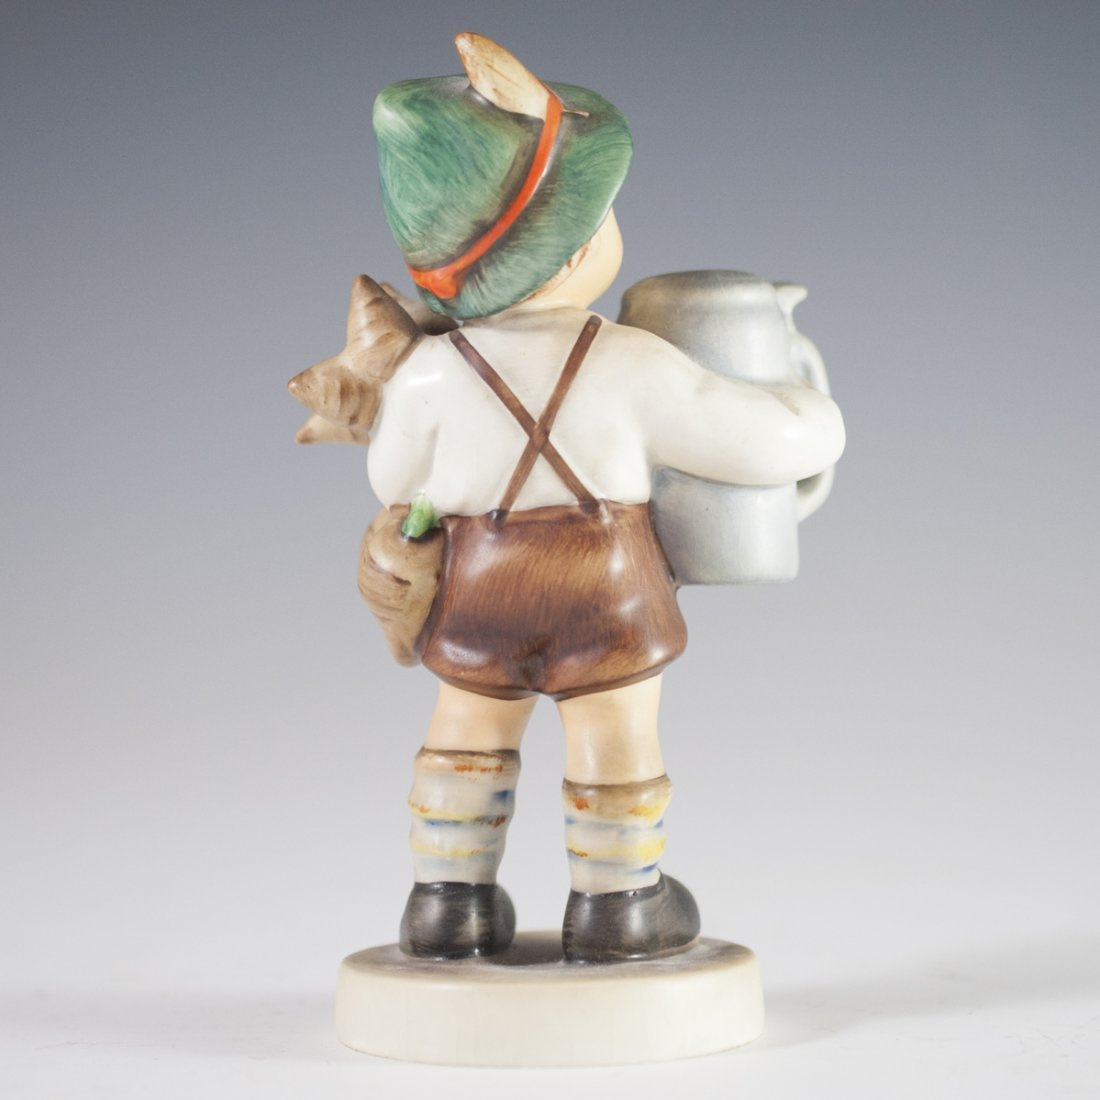 German Porcelain Figurine - 2